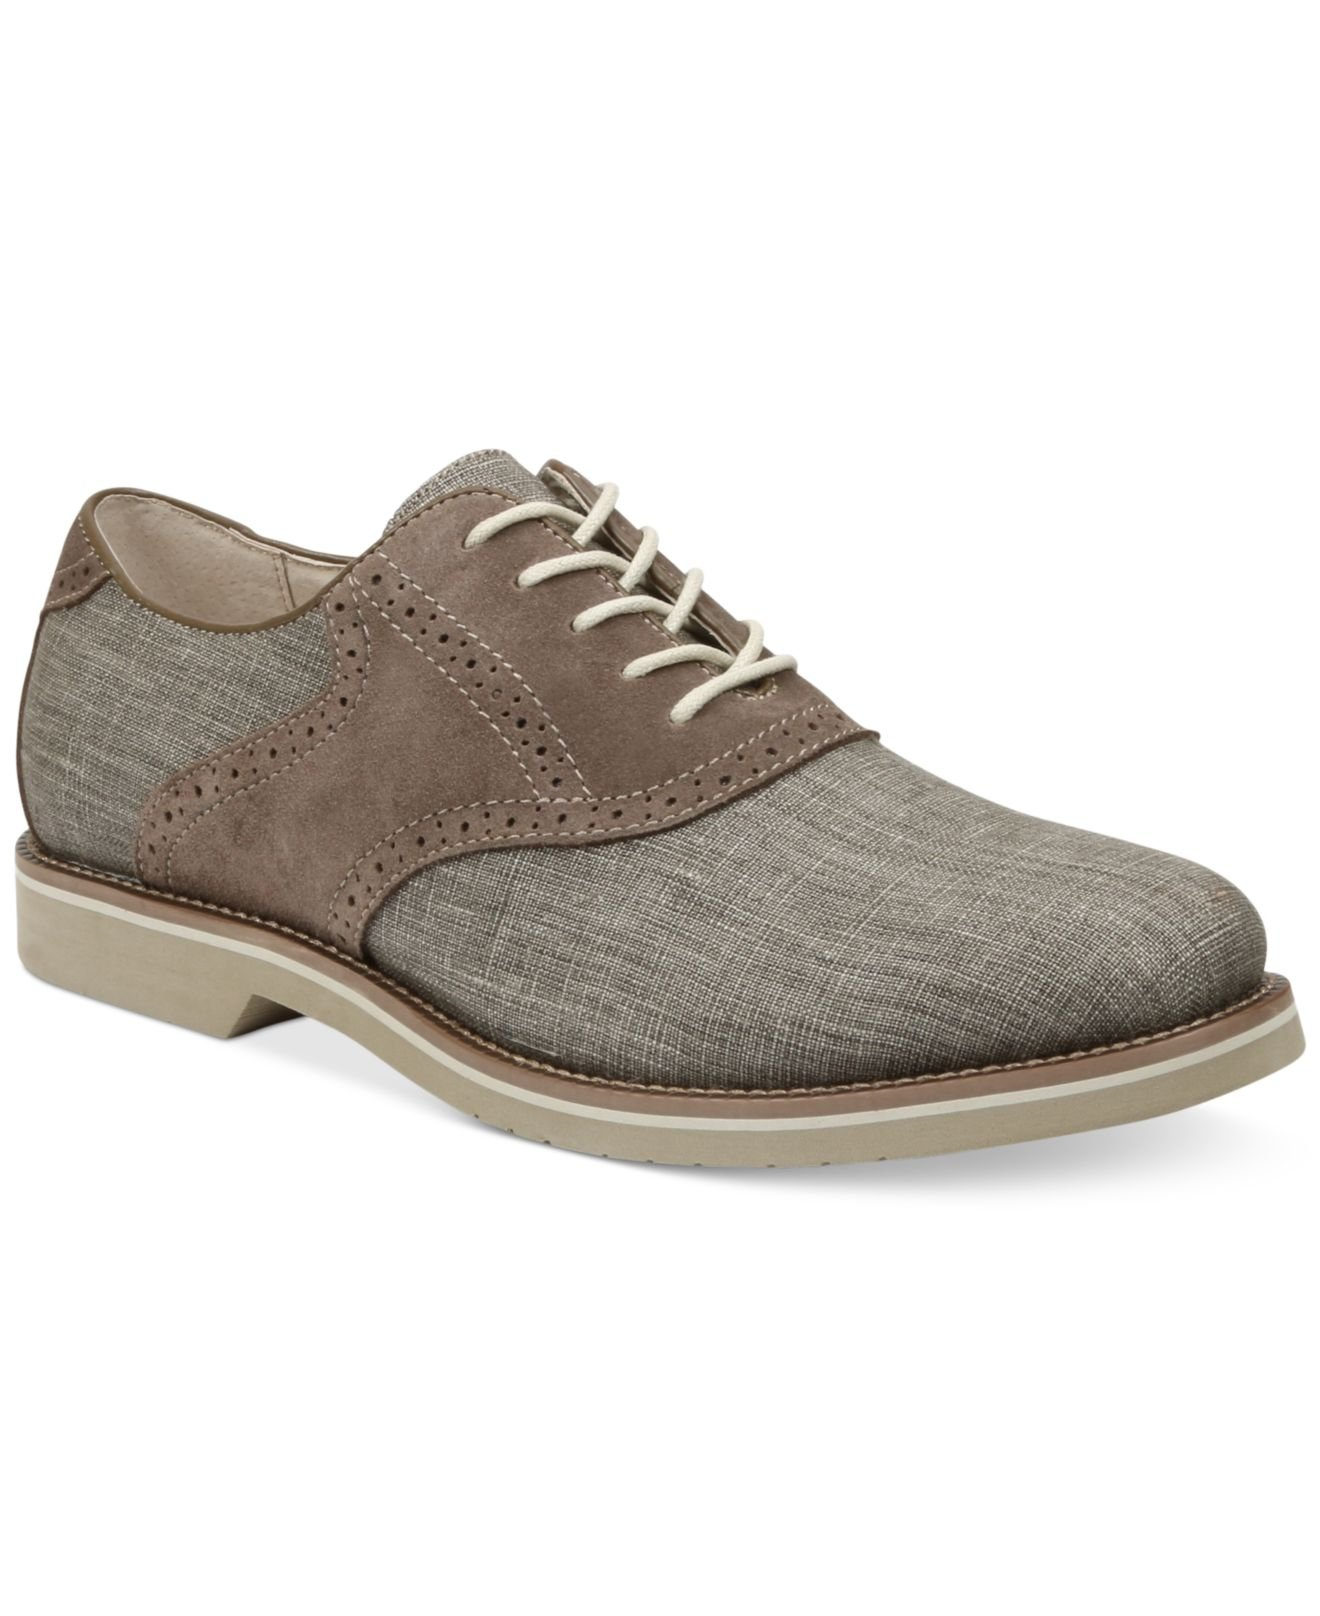 g h bass co bass carson saddle oxfords in gray for